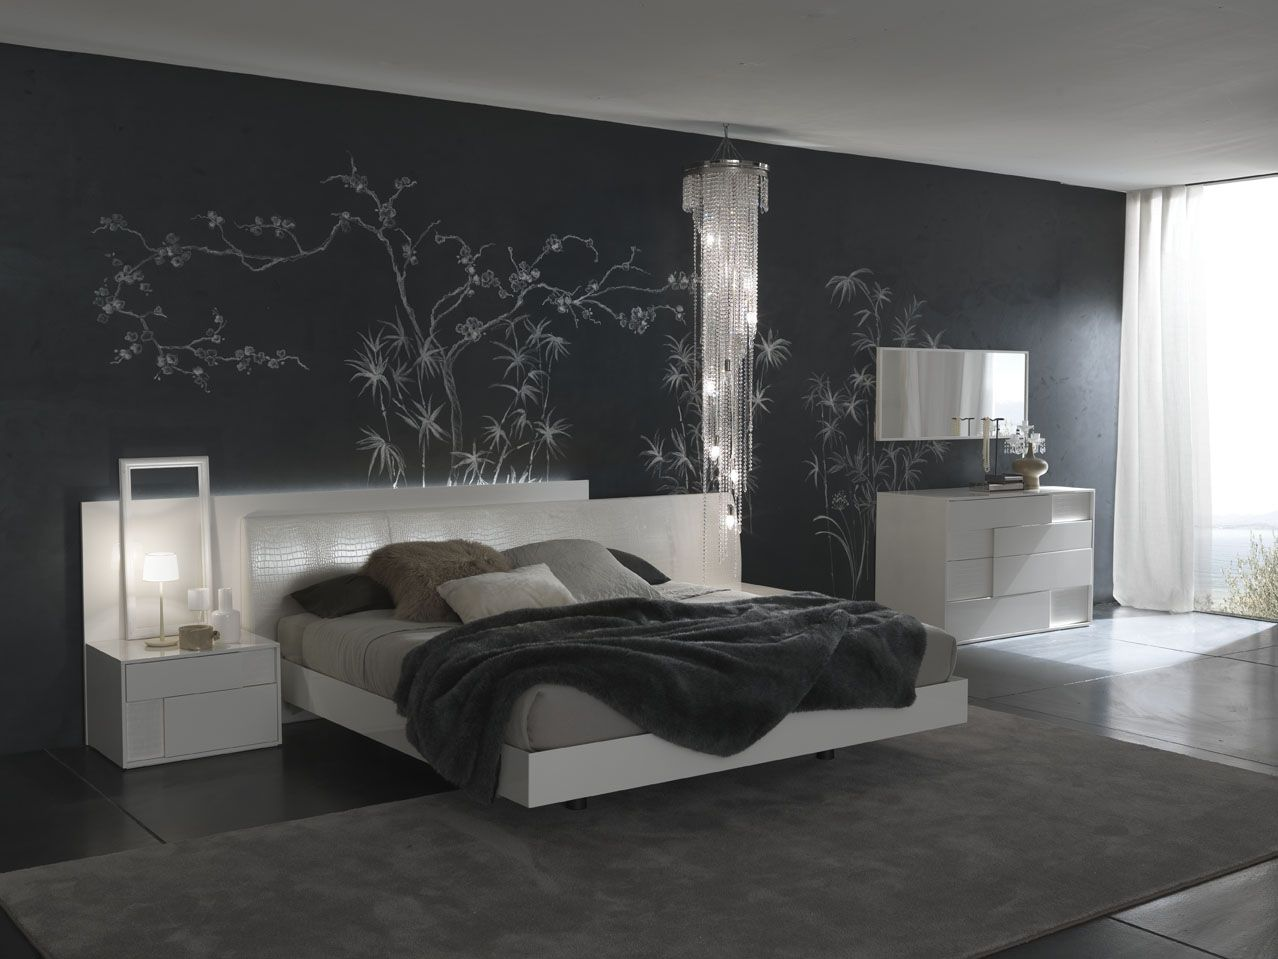 Beautiful Modern Gray Bedroom Ideas Part - 1: Contemporary Room Ideas Bedroom Set With Gray Bedding Modern Bedroom  Decorating Ideas Complete Pillows And Dark Wall Color Using Mirror That  Have White Wood ...